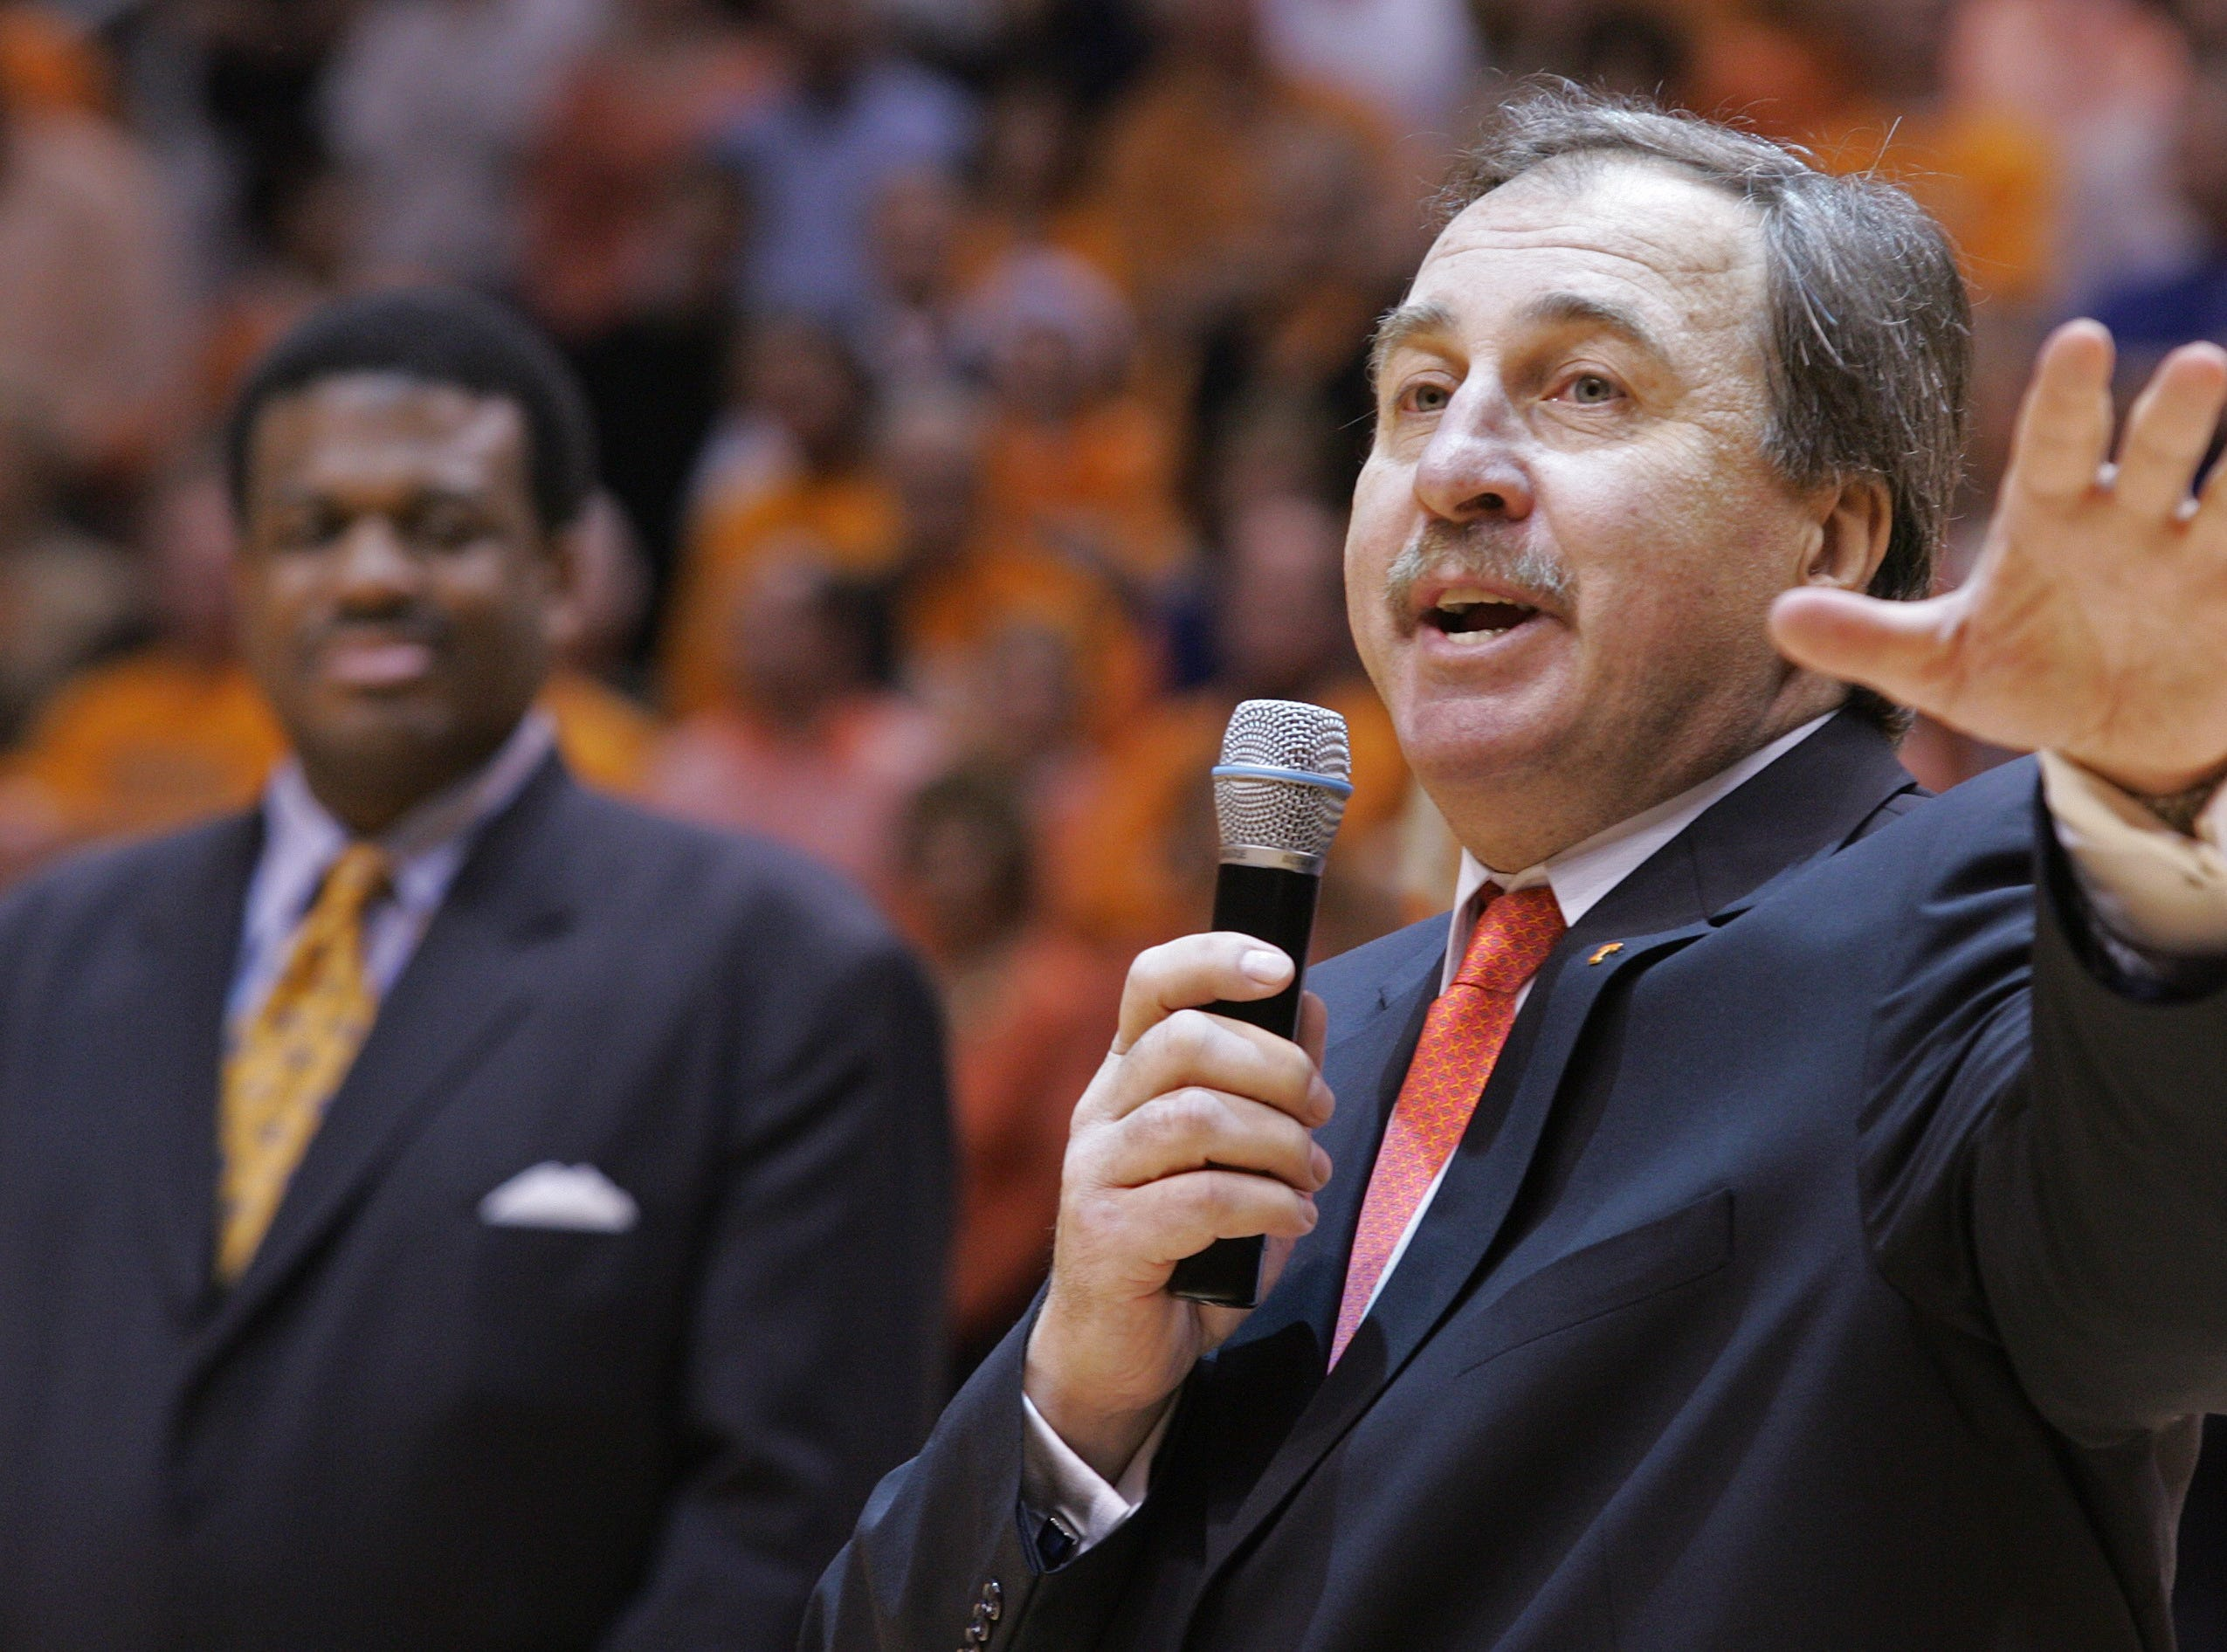 ** CORRECTS TO GRUNFELD NOT GRUFELD ** Former Tennessee player Ernie Grunfeld speaks during halftime of a college basketball game against Kentucky, Saturday, March 2, 2008, in Knoxville, Tenn. Grunfeld's jersey will be retired. Behind him is former teammate Bernard King who's jersey was retired in 2006.